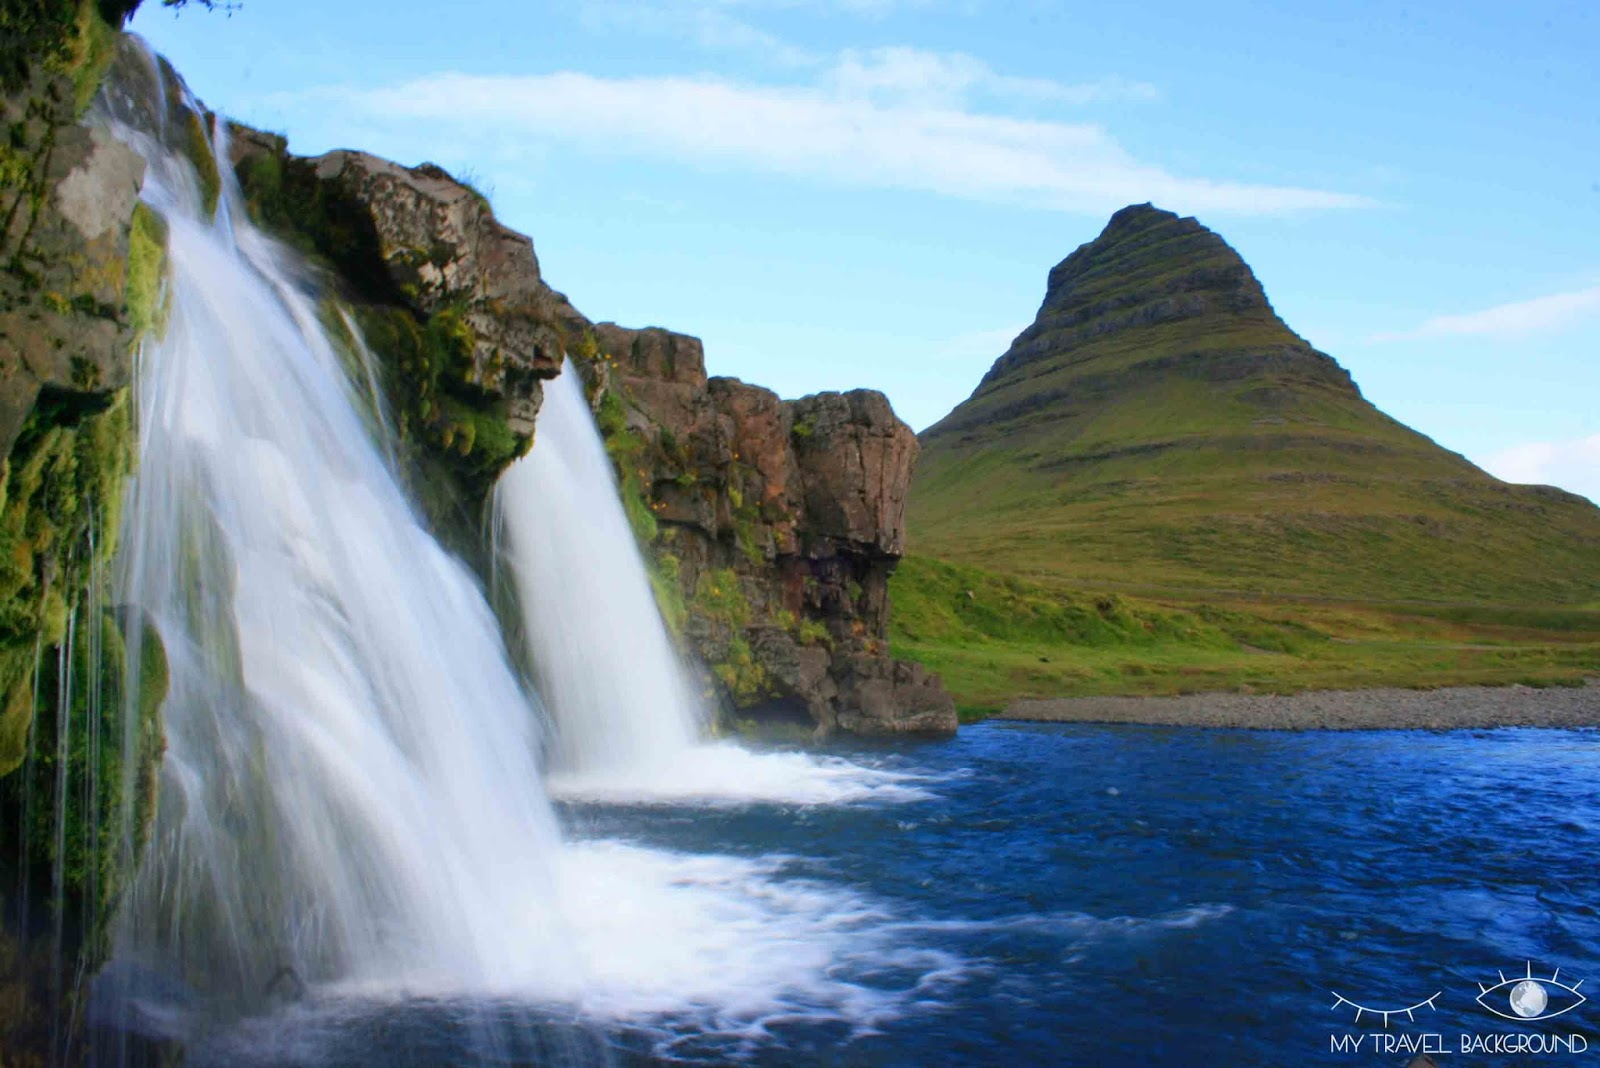 My Travel Background : Road Trip en Islande, itinéraire et infos pratiques / Mont Kirkjufell